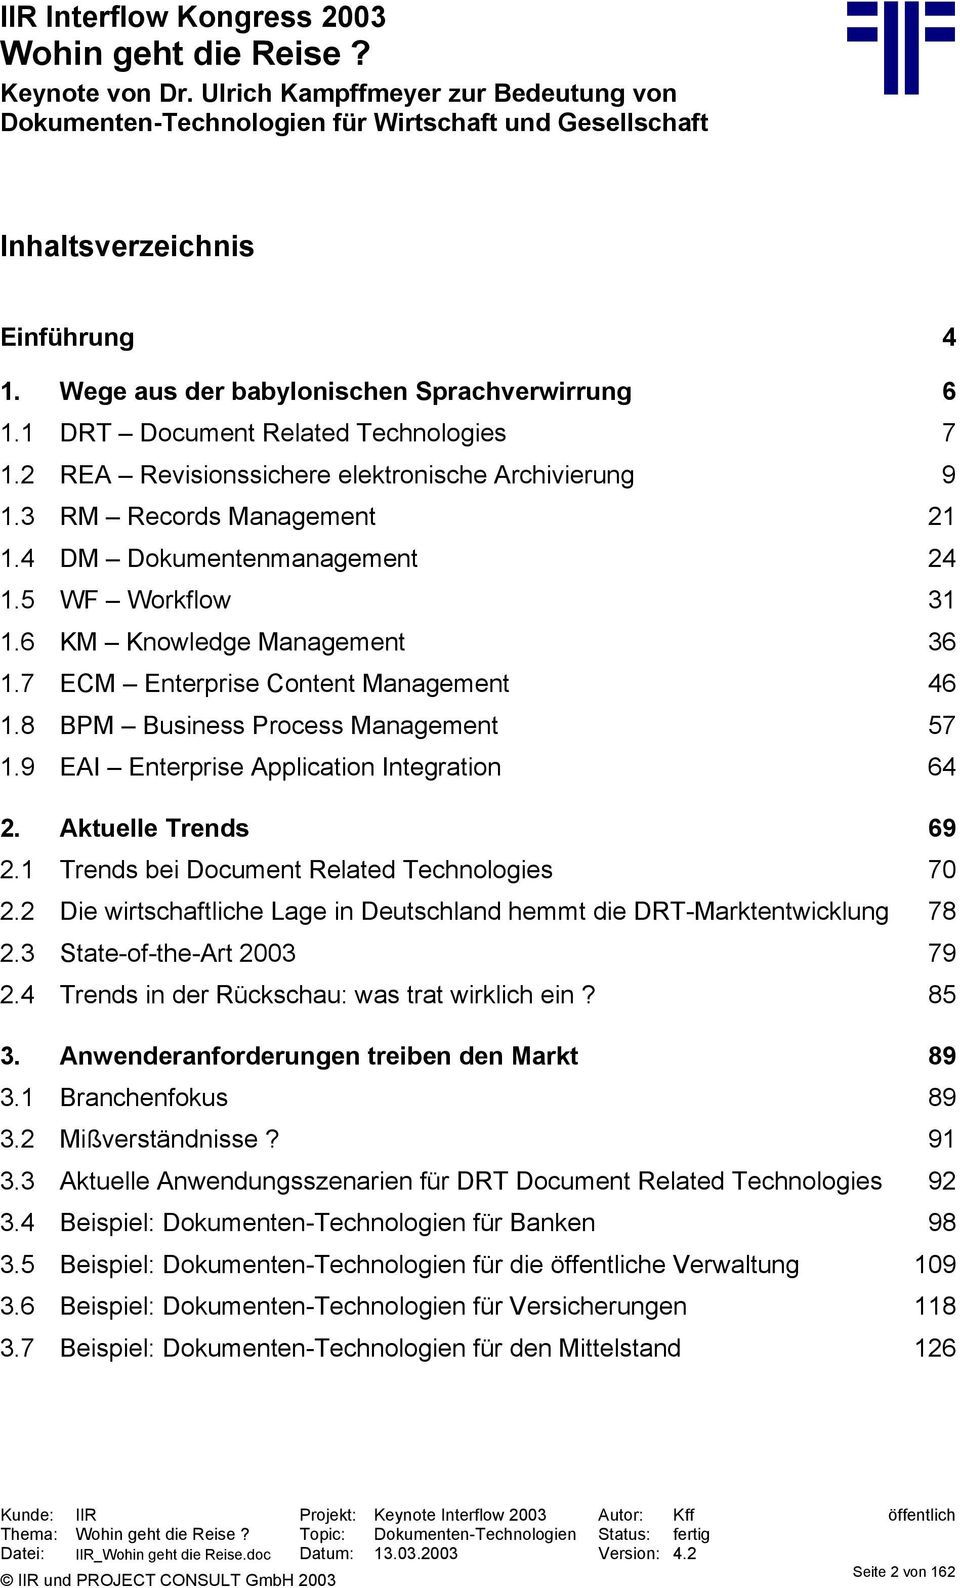 9 EAI Enterprise Application Integration 64 2. Aktuelle Trends 69 2.1 Trends bei Document Related Technologies 70 2.2 Die wirtschaftliche Lage in Deutschland hemmt die DRT-Marktentwicklung 78 2.